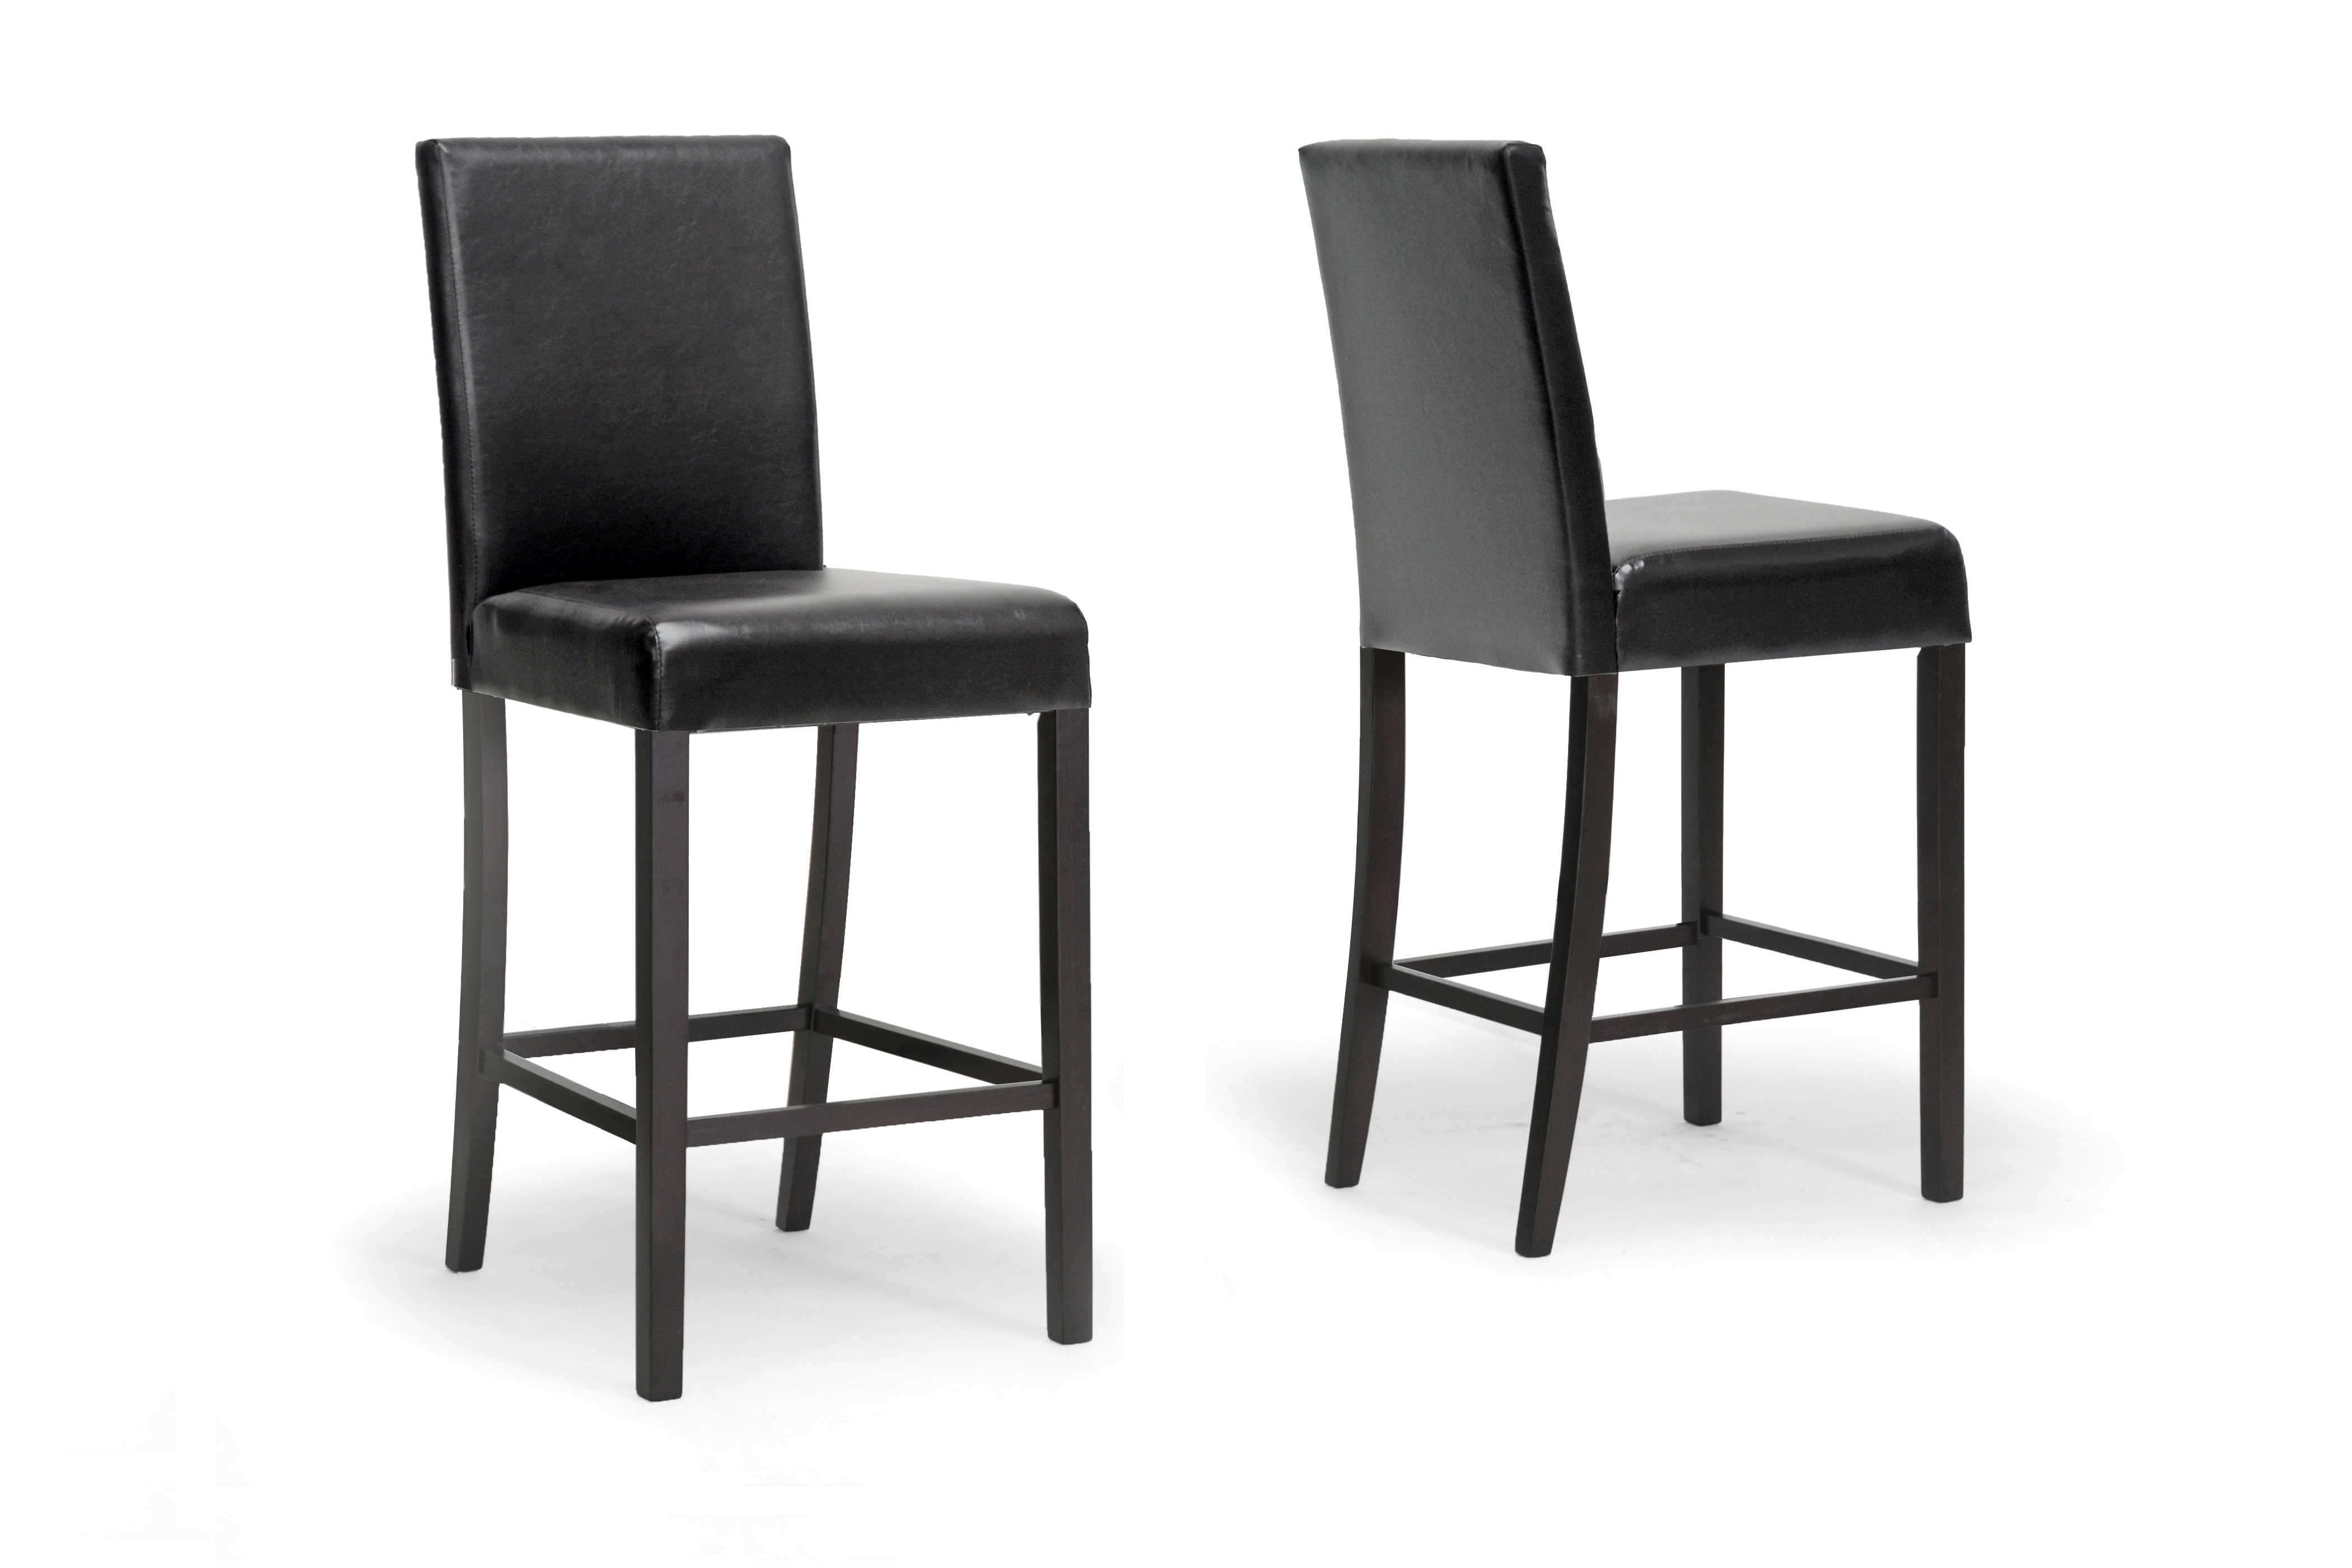 Shaunna Counter Stool in Faux Leather - Set of 2